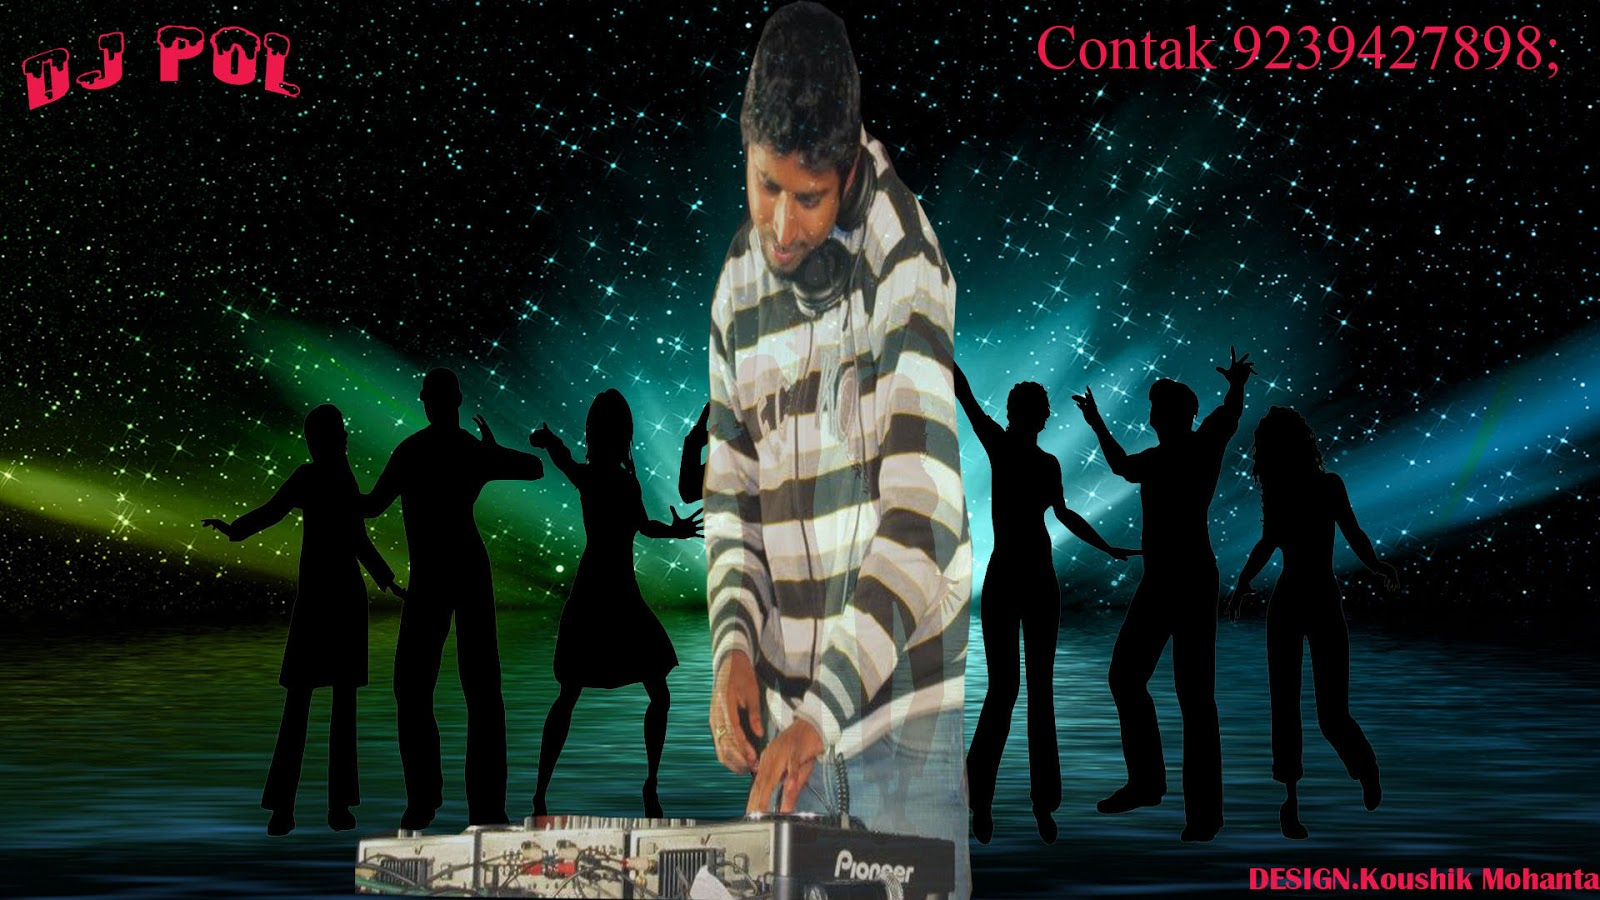 None Stop Dj Cd Dj By Dj Pol Direct Download Download Now